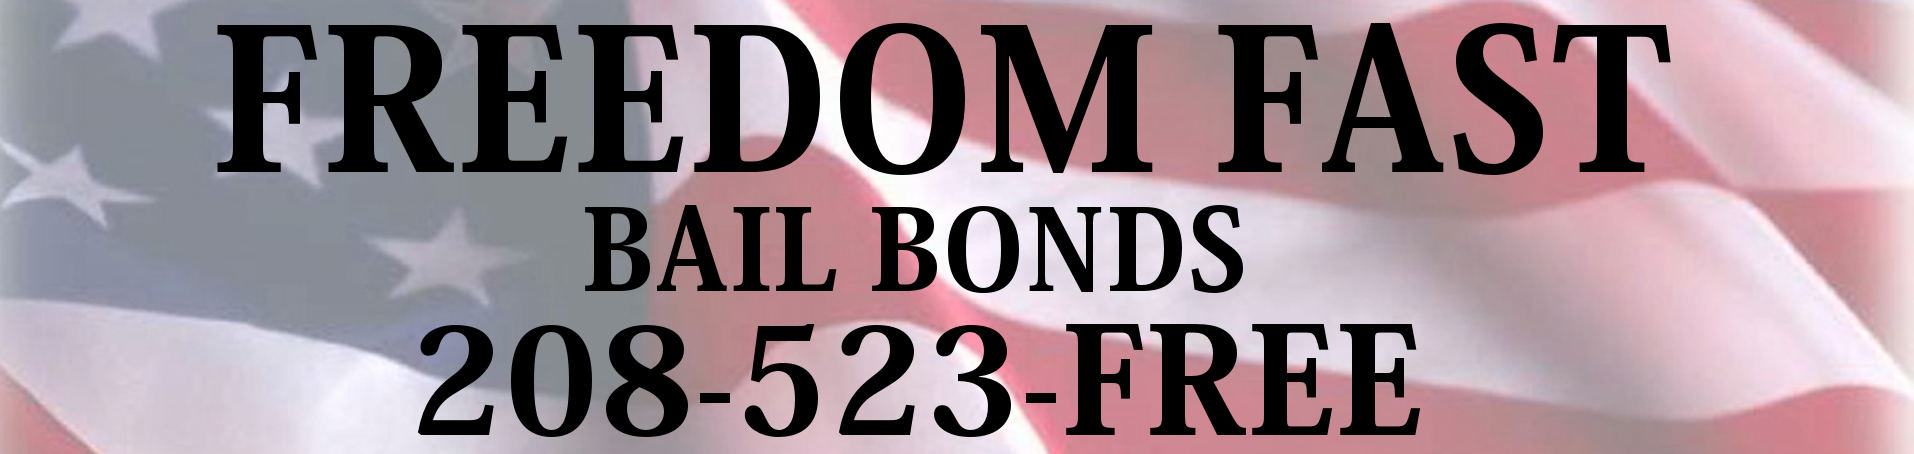 Freedom Fast Bail Bonds